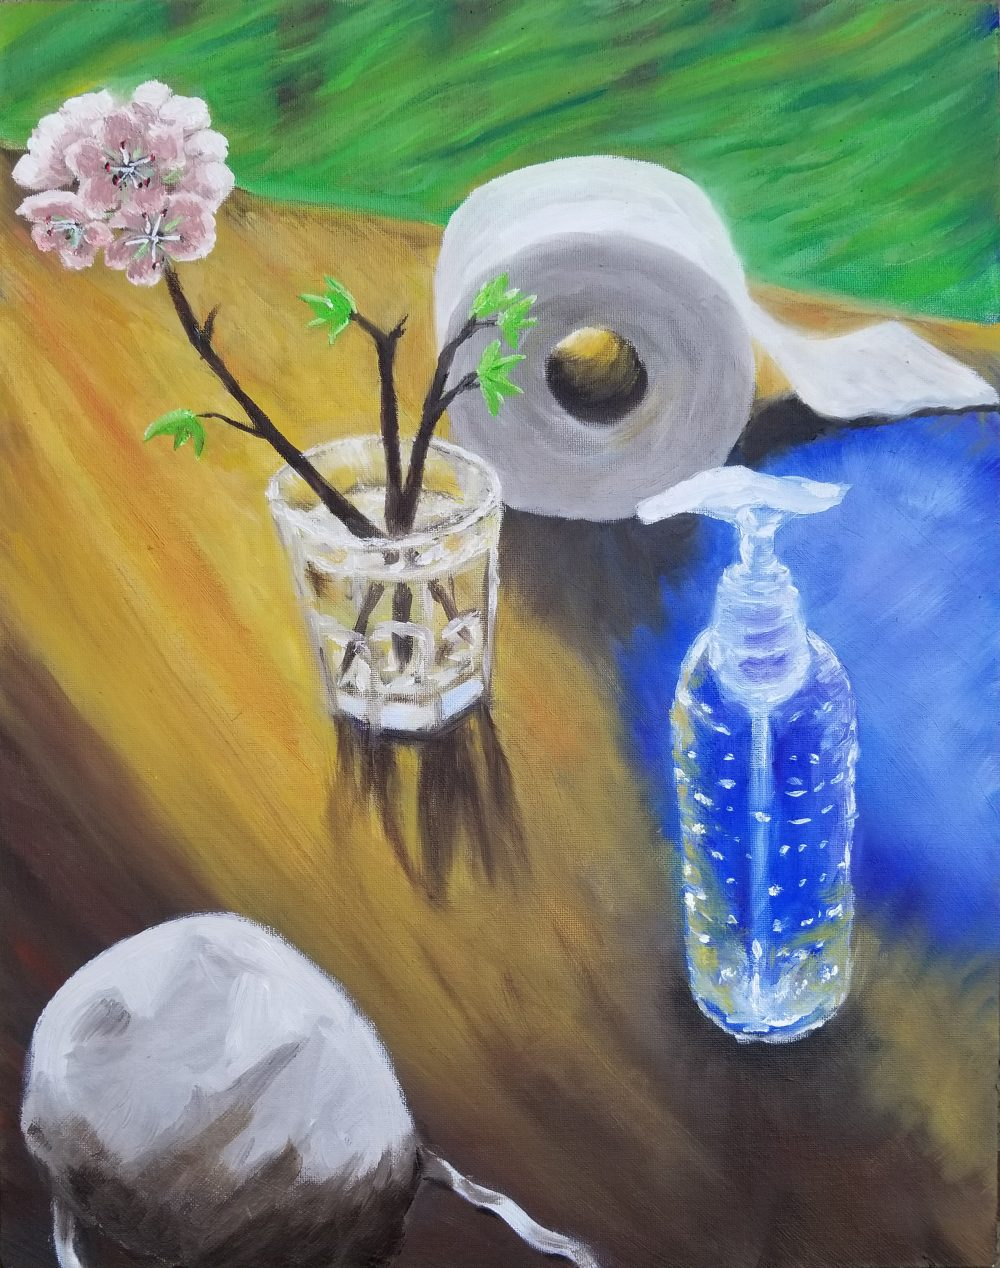 """Maggie Dunklee; Still life with hoarded items, 2020, Oil Paint on Canvas Board; 18 x 14""""; Painting"""